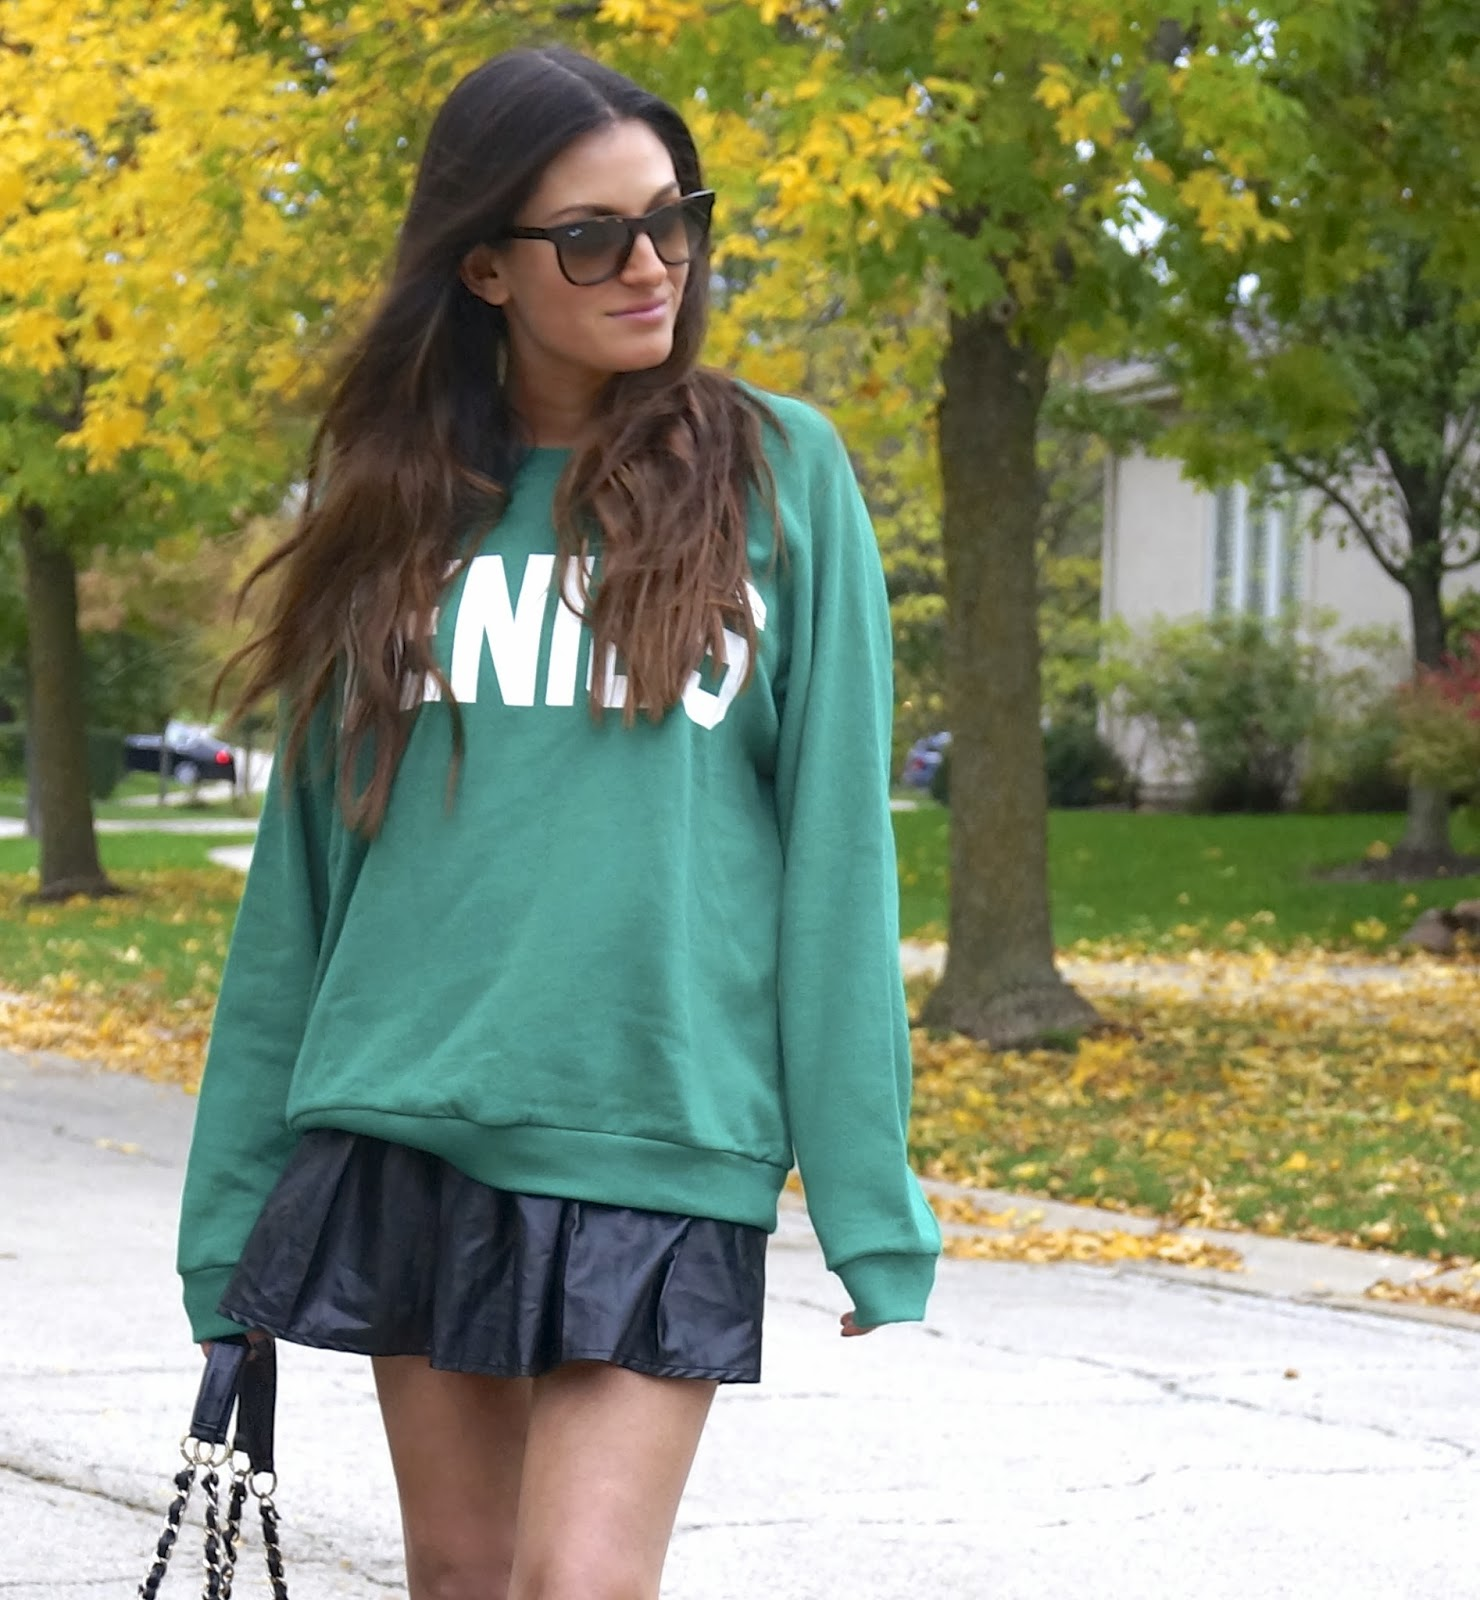 forever 21 genius sweatshirt, faux leather skirt